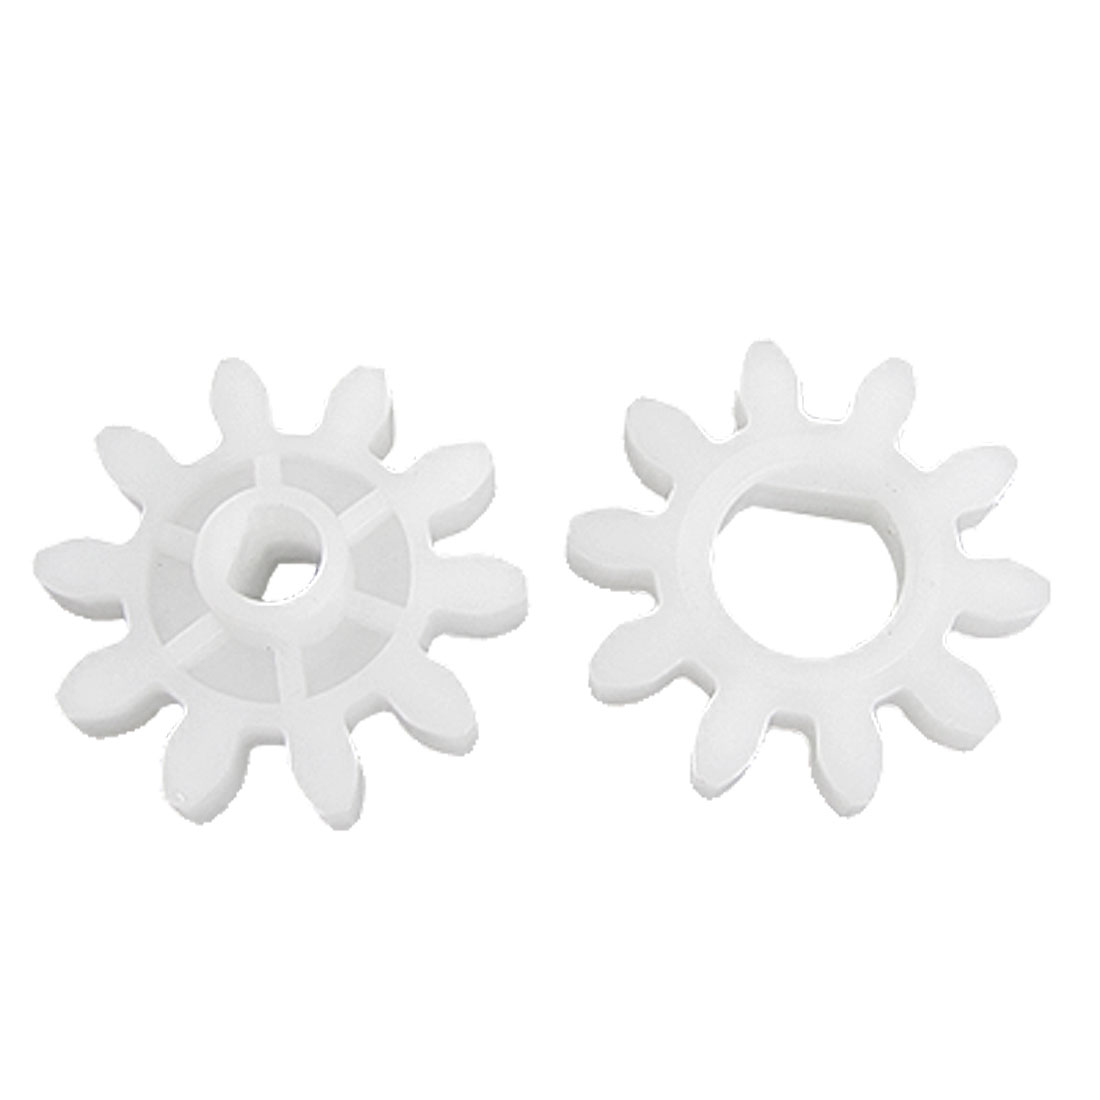 2 Pcs Printed Circuit Board Propene Polymer Spur Gears